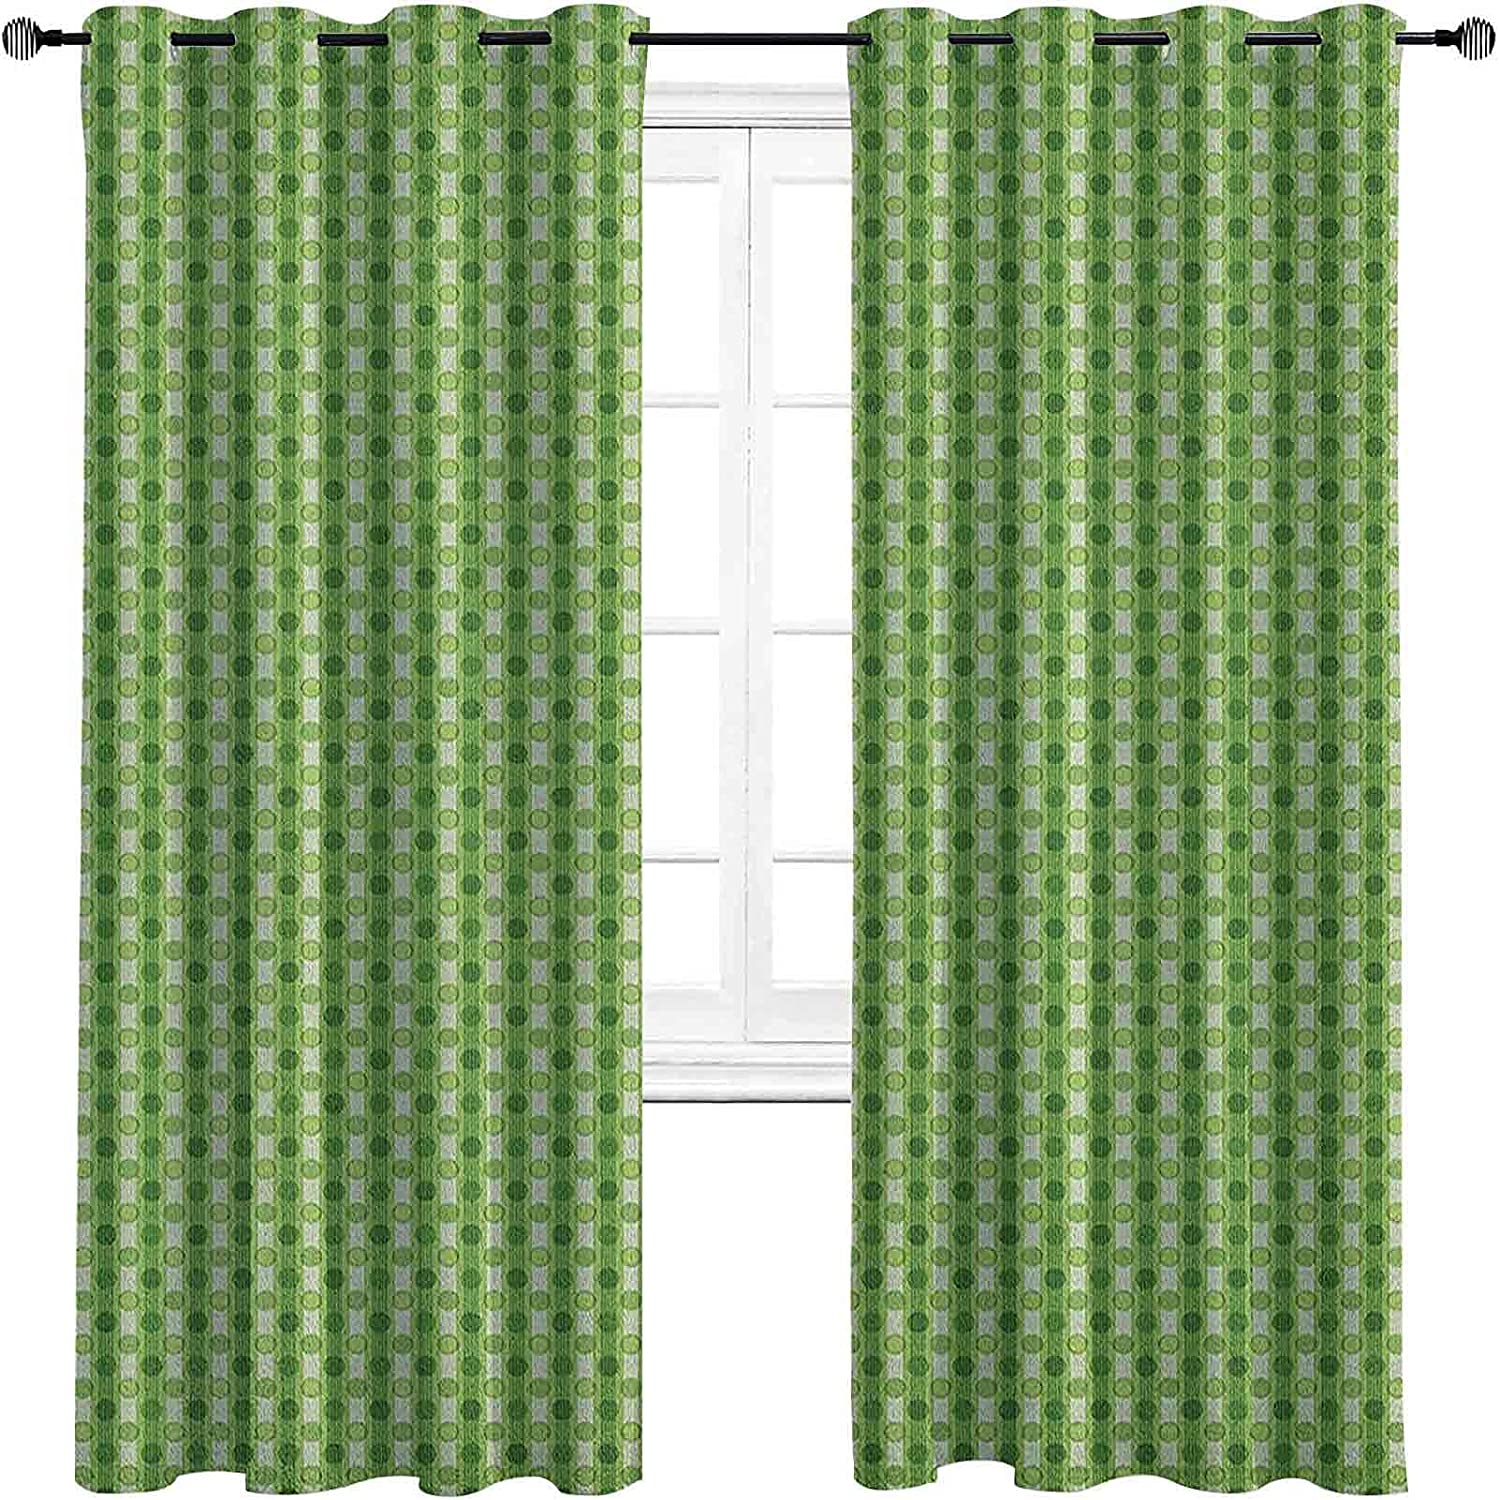 Abstract The Living Room has Curtains Some reservation Powerful Blackout S Retro Classic